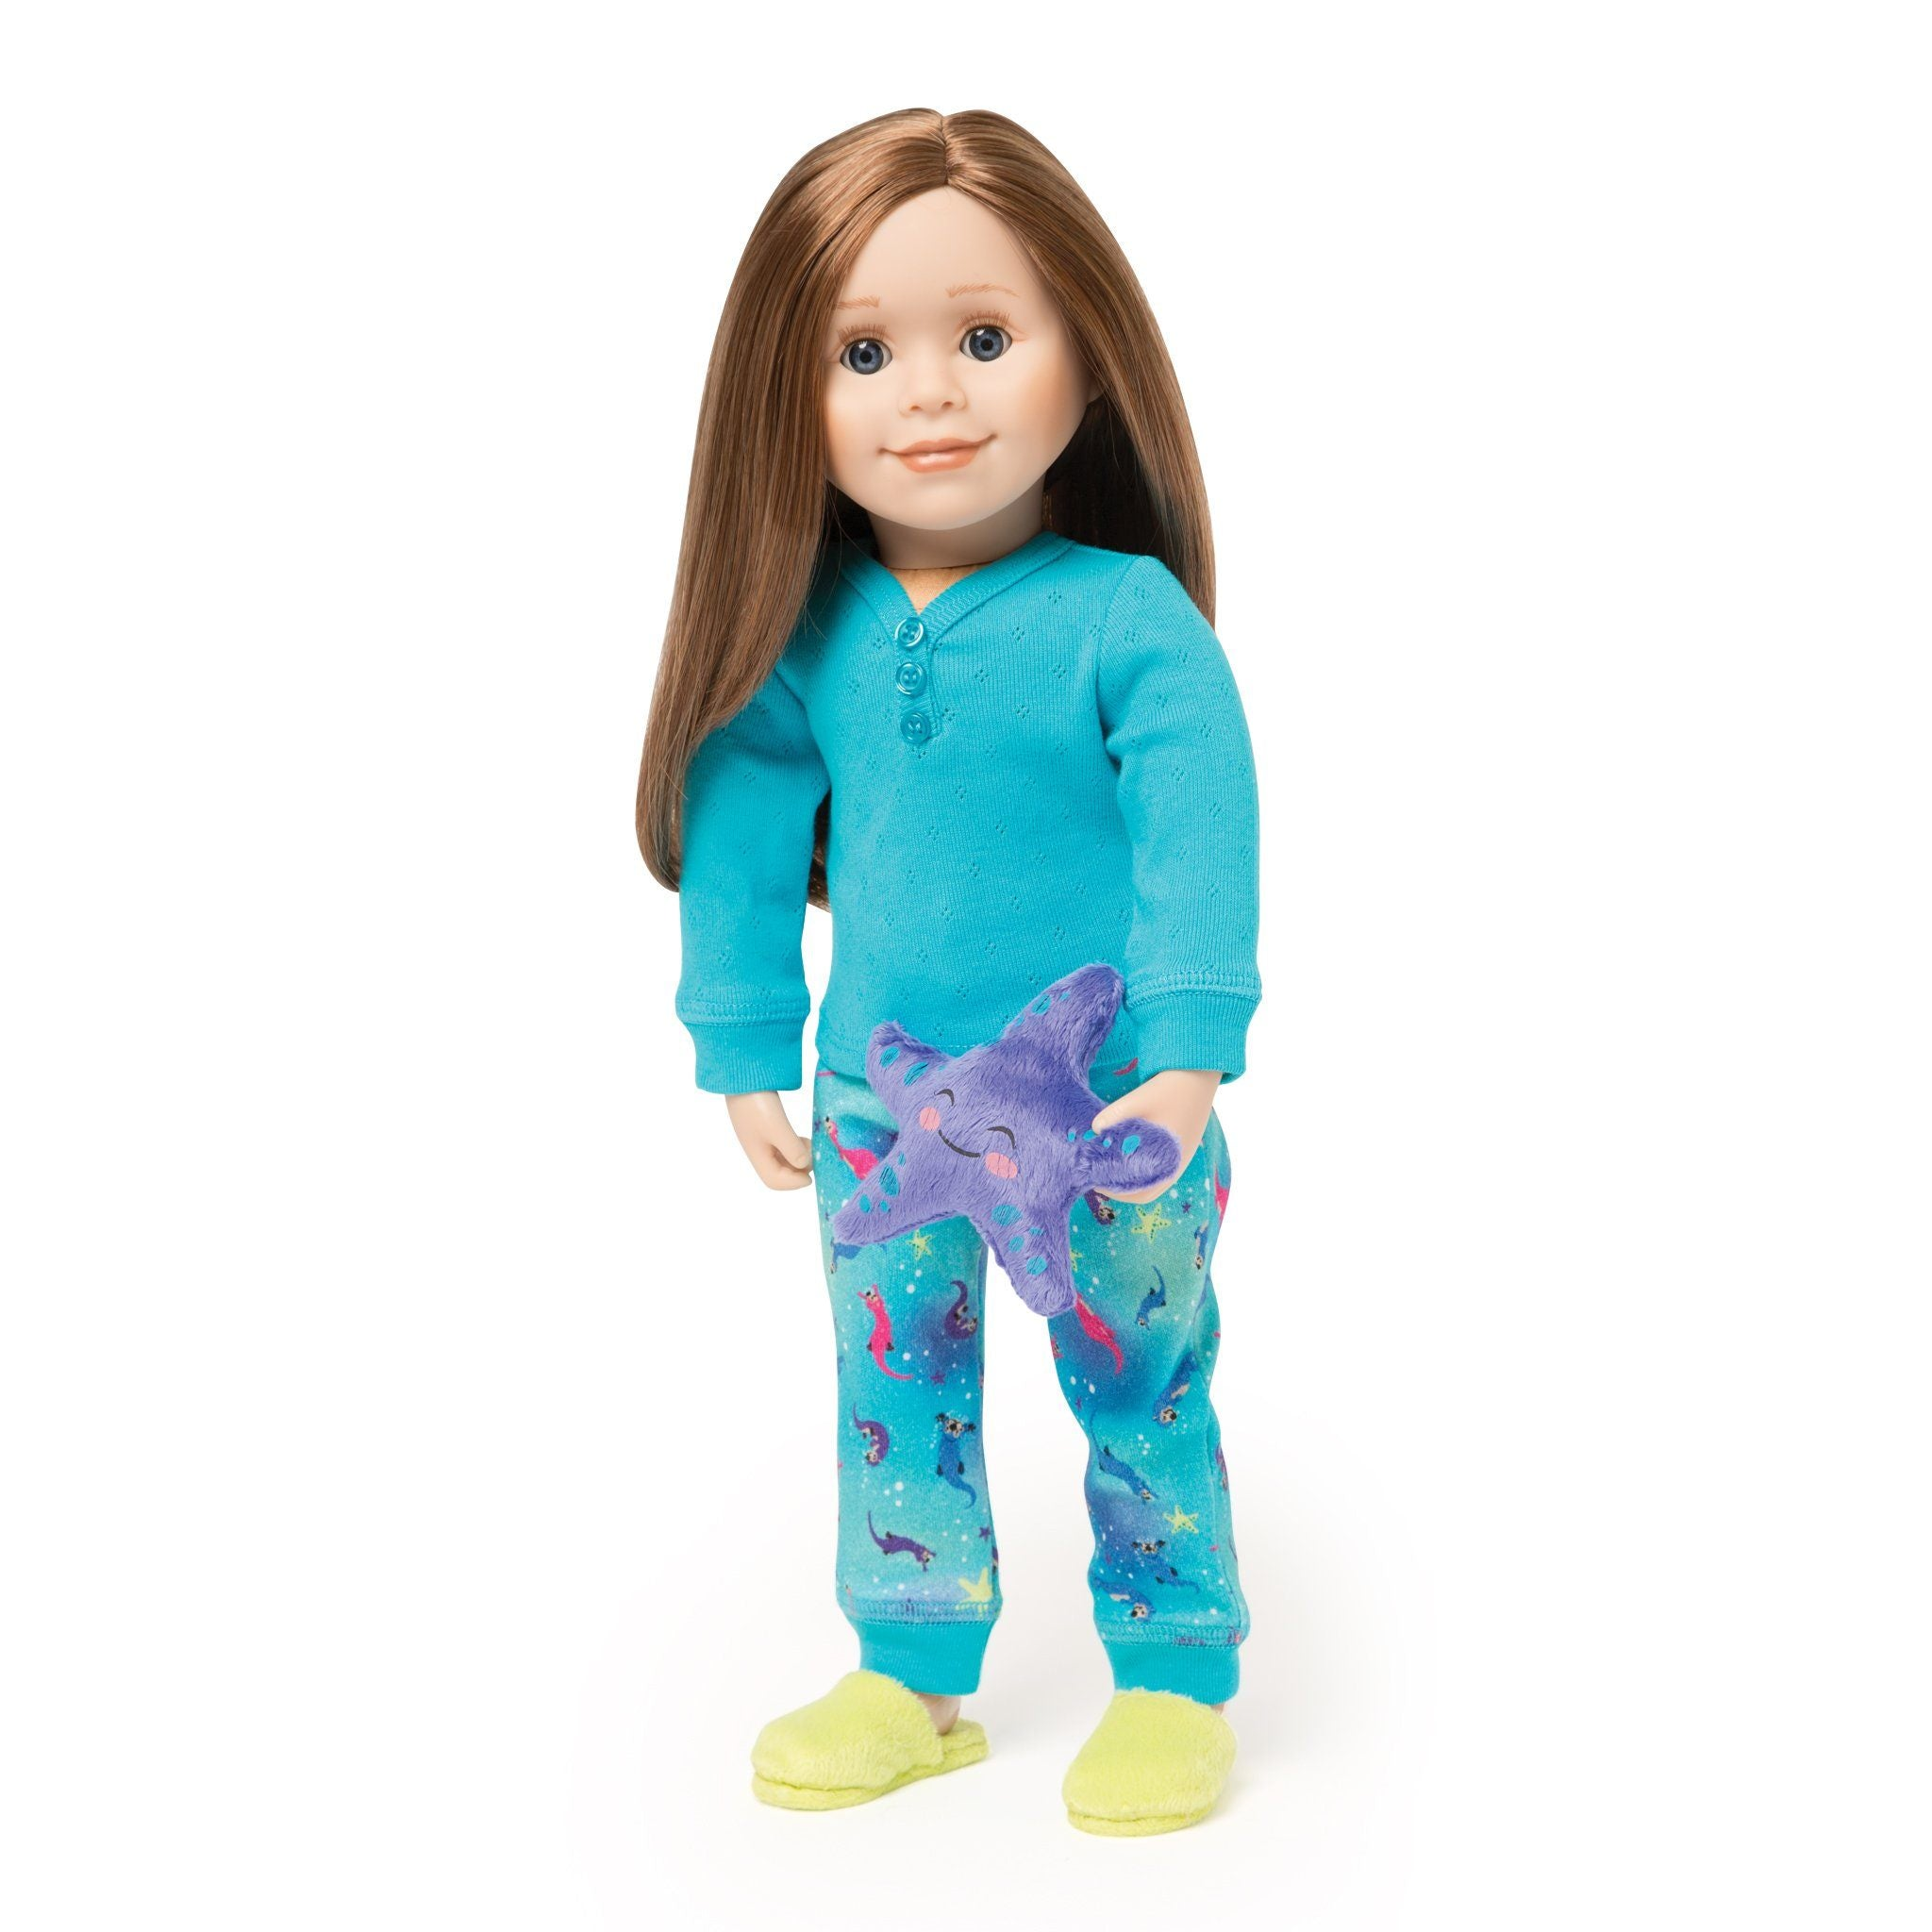 Sea Otter Sleepwear 2-piece pyjamas with long-sleeve blue henley, sea otter patterned blue PJ pants, bright green fuzzy slippers and a plush purple sea star fit all 18 inch dolls.